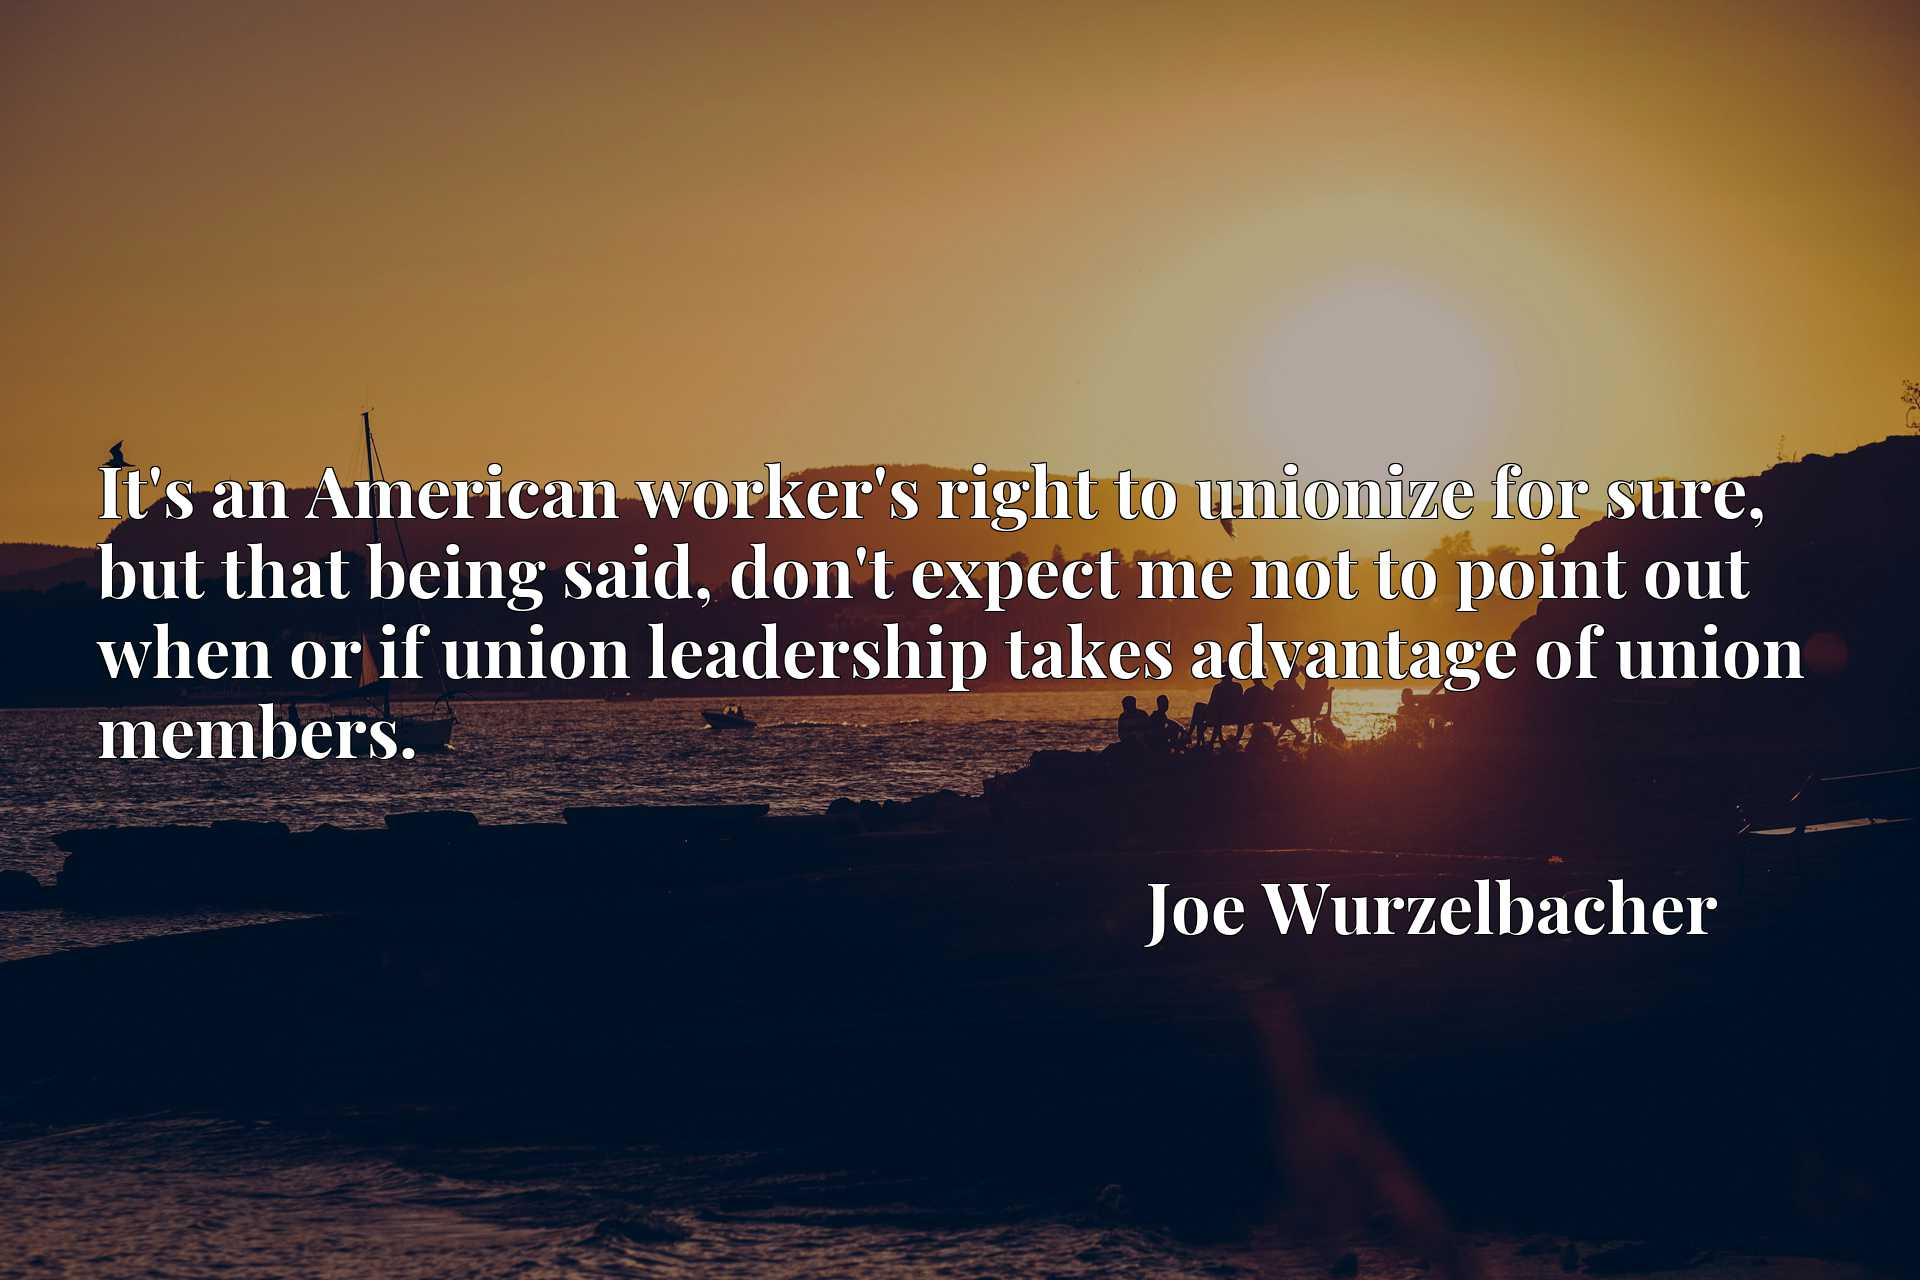 It's an American worker's right to unionize for sure, but that being said, don't expect me not to point out when or if union leadership takes advantage of union members.